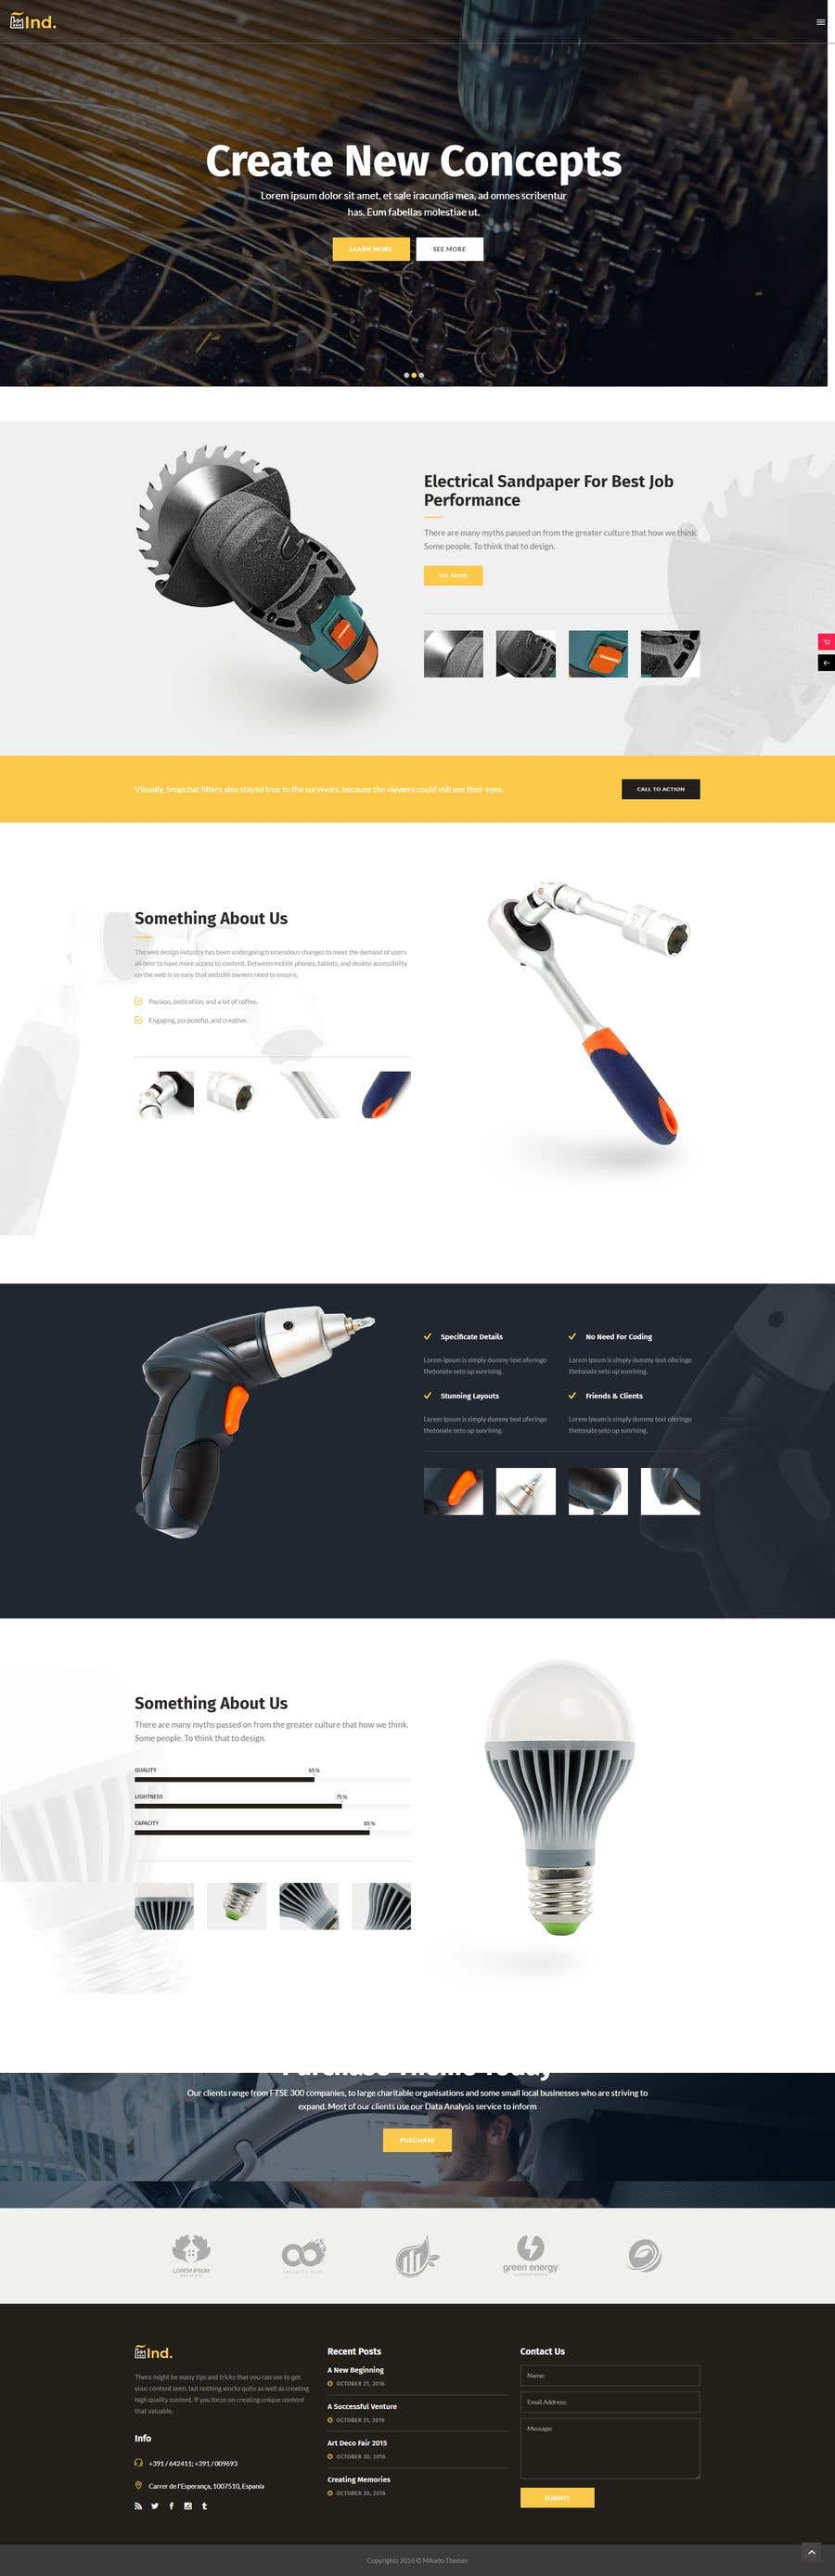 Penyertaan Peraduan #36 untuk wordpress theme design for battery and lighting subject